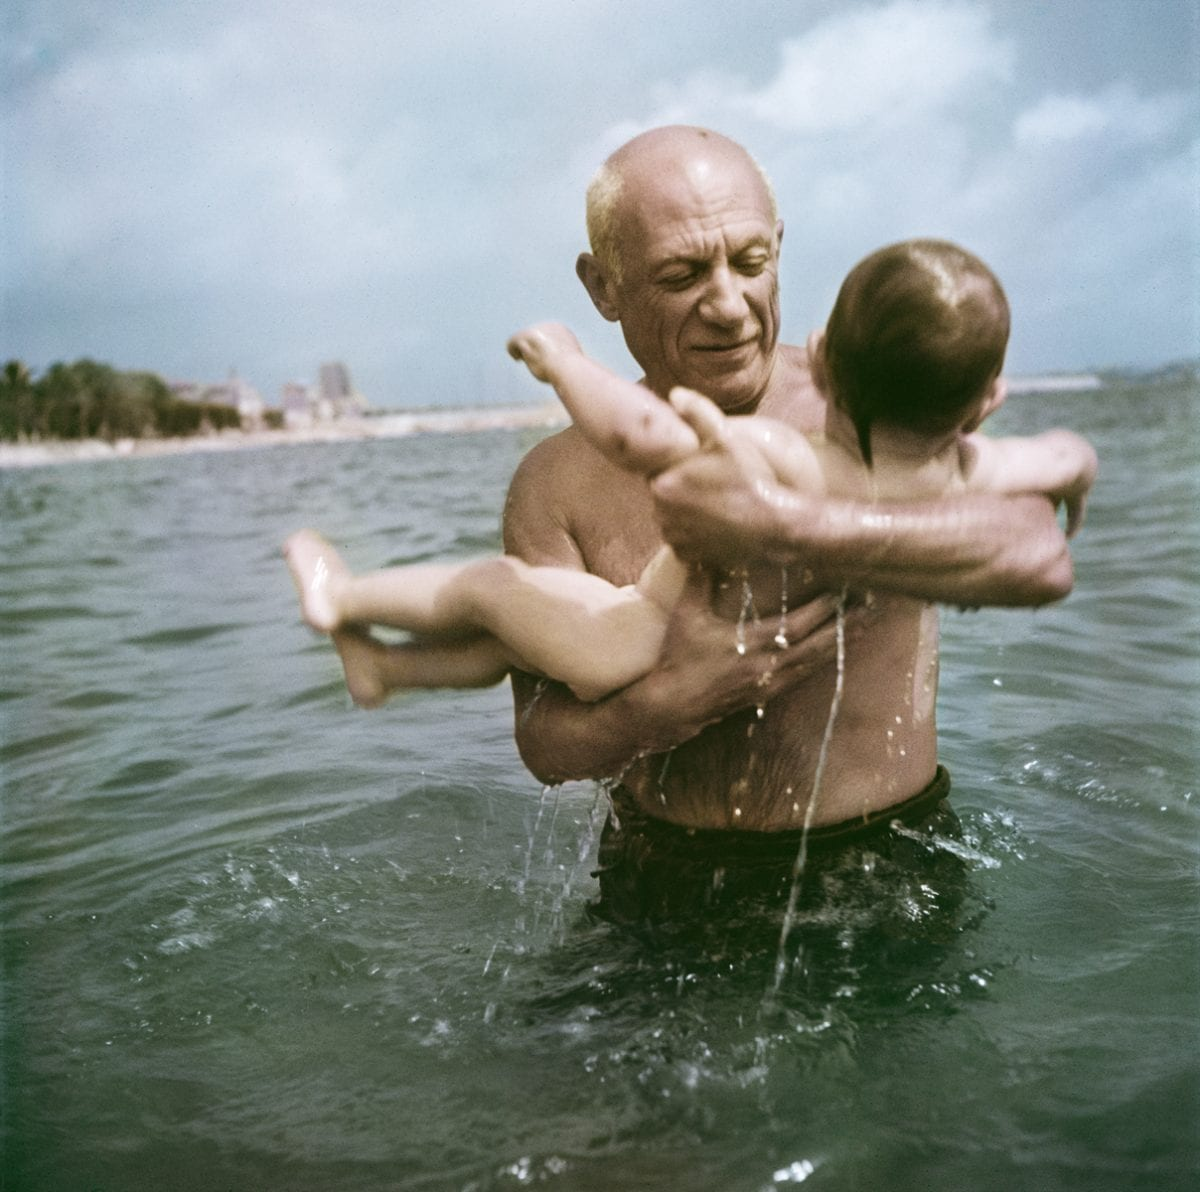 Pablo Picasso playing in the water with his son Claude, Vallauris, France, 1948. © Robert Capa/International Center of Photography/Magnum Photos.